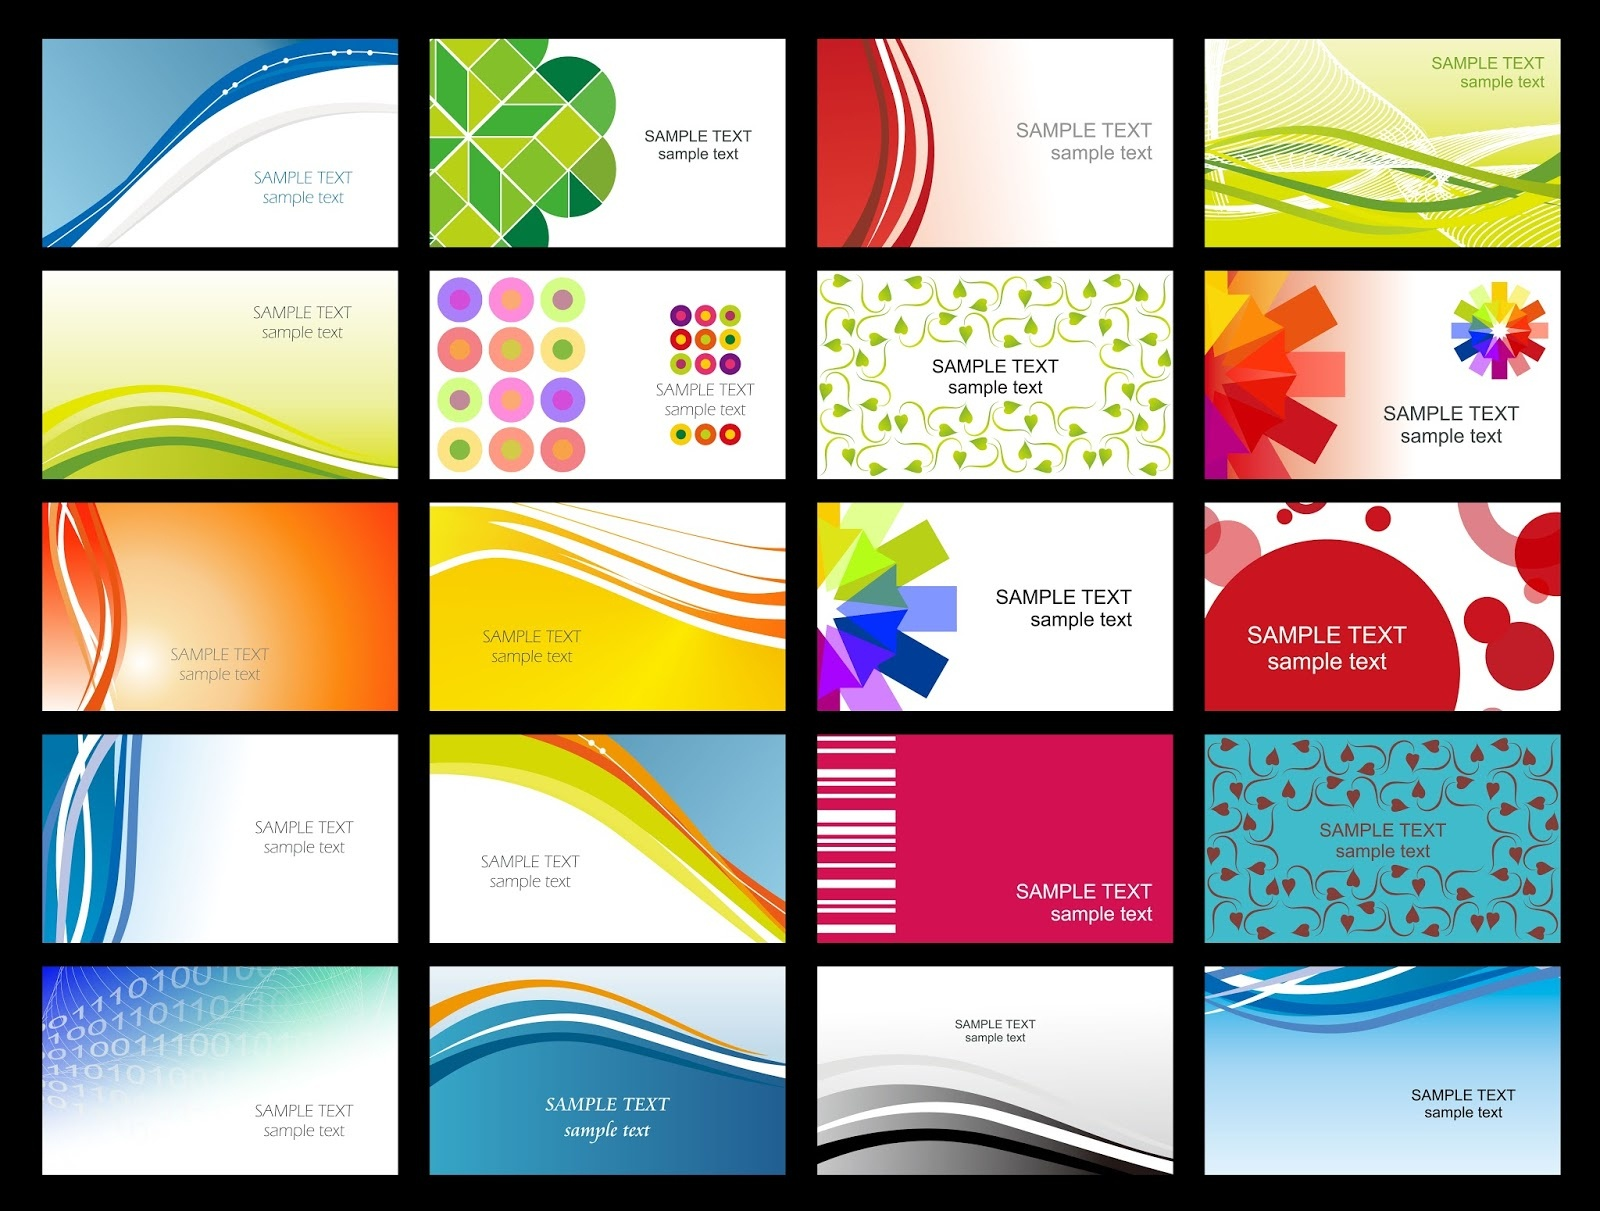 Printable Business Card Template - Business Card Tips - Free Printable Business Card Maker